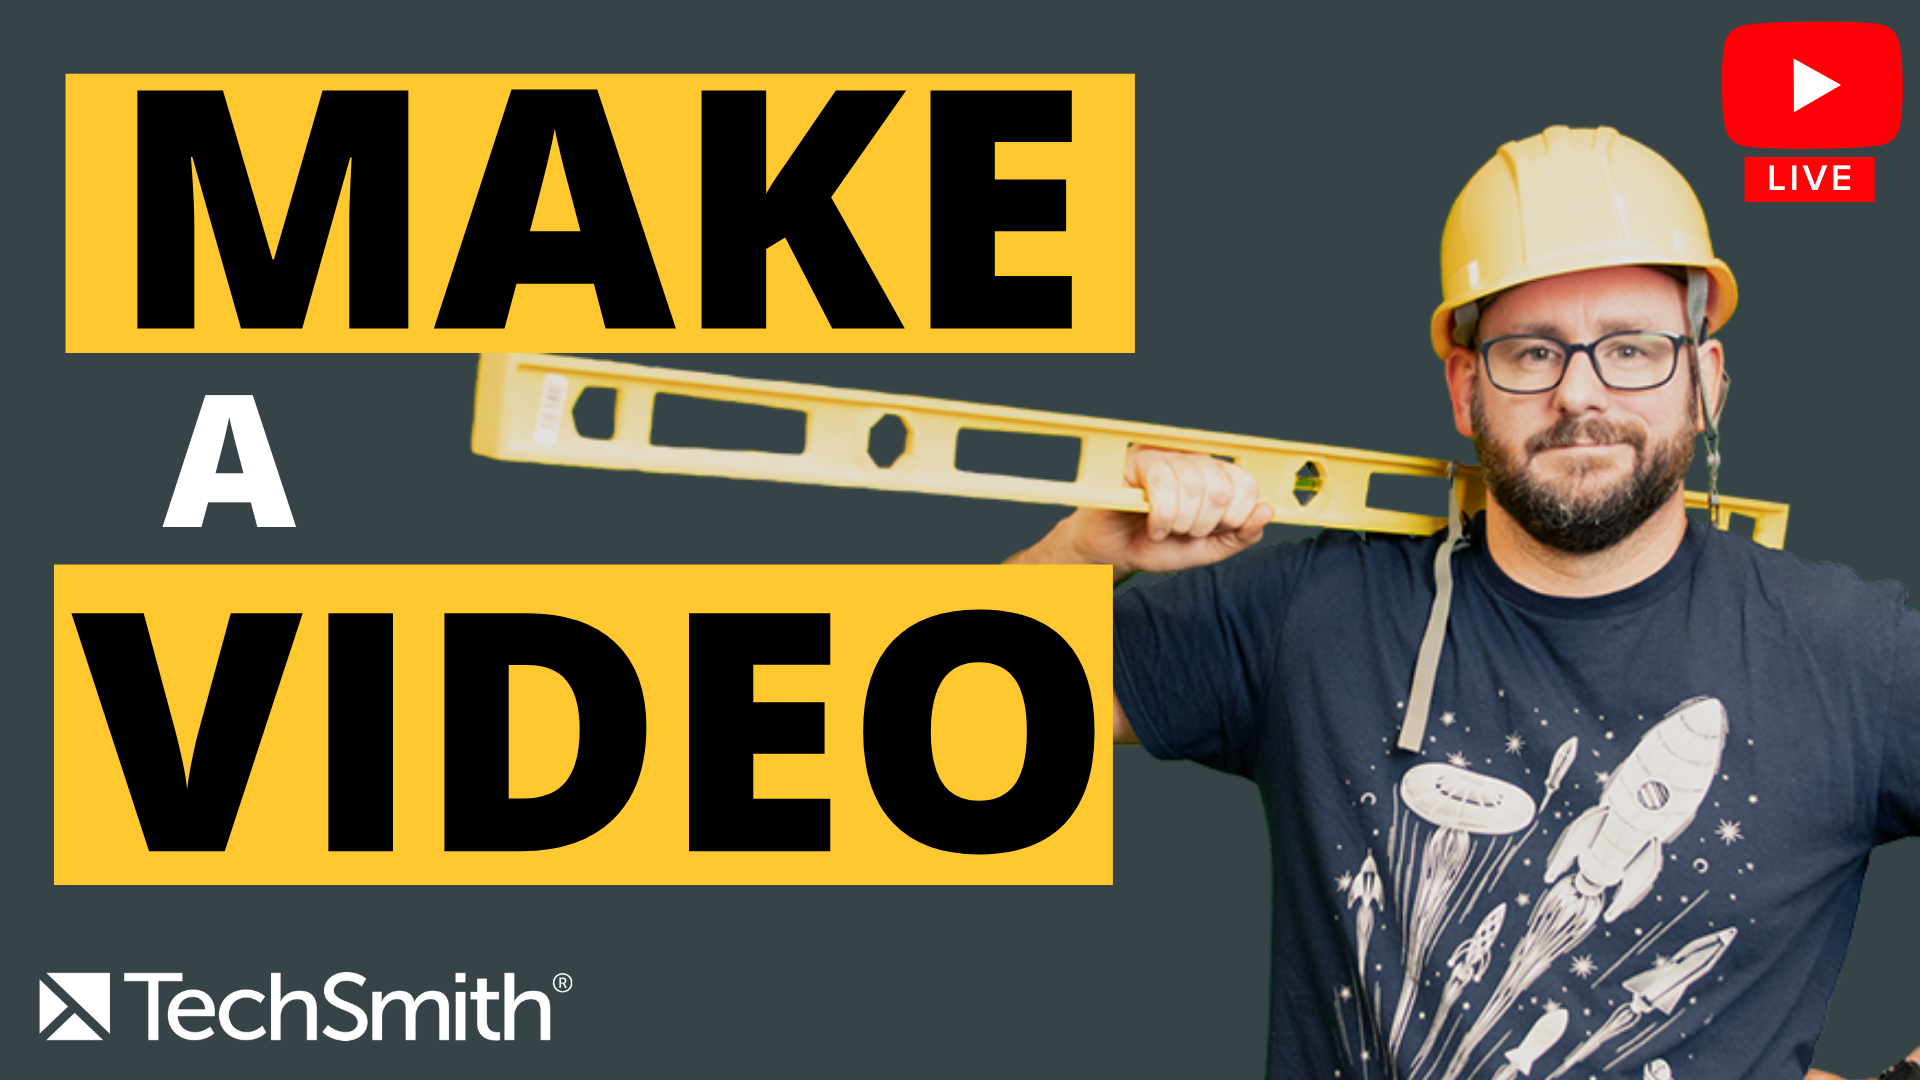 How to Make Your First Video (Beginner's Guide)